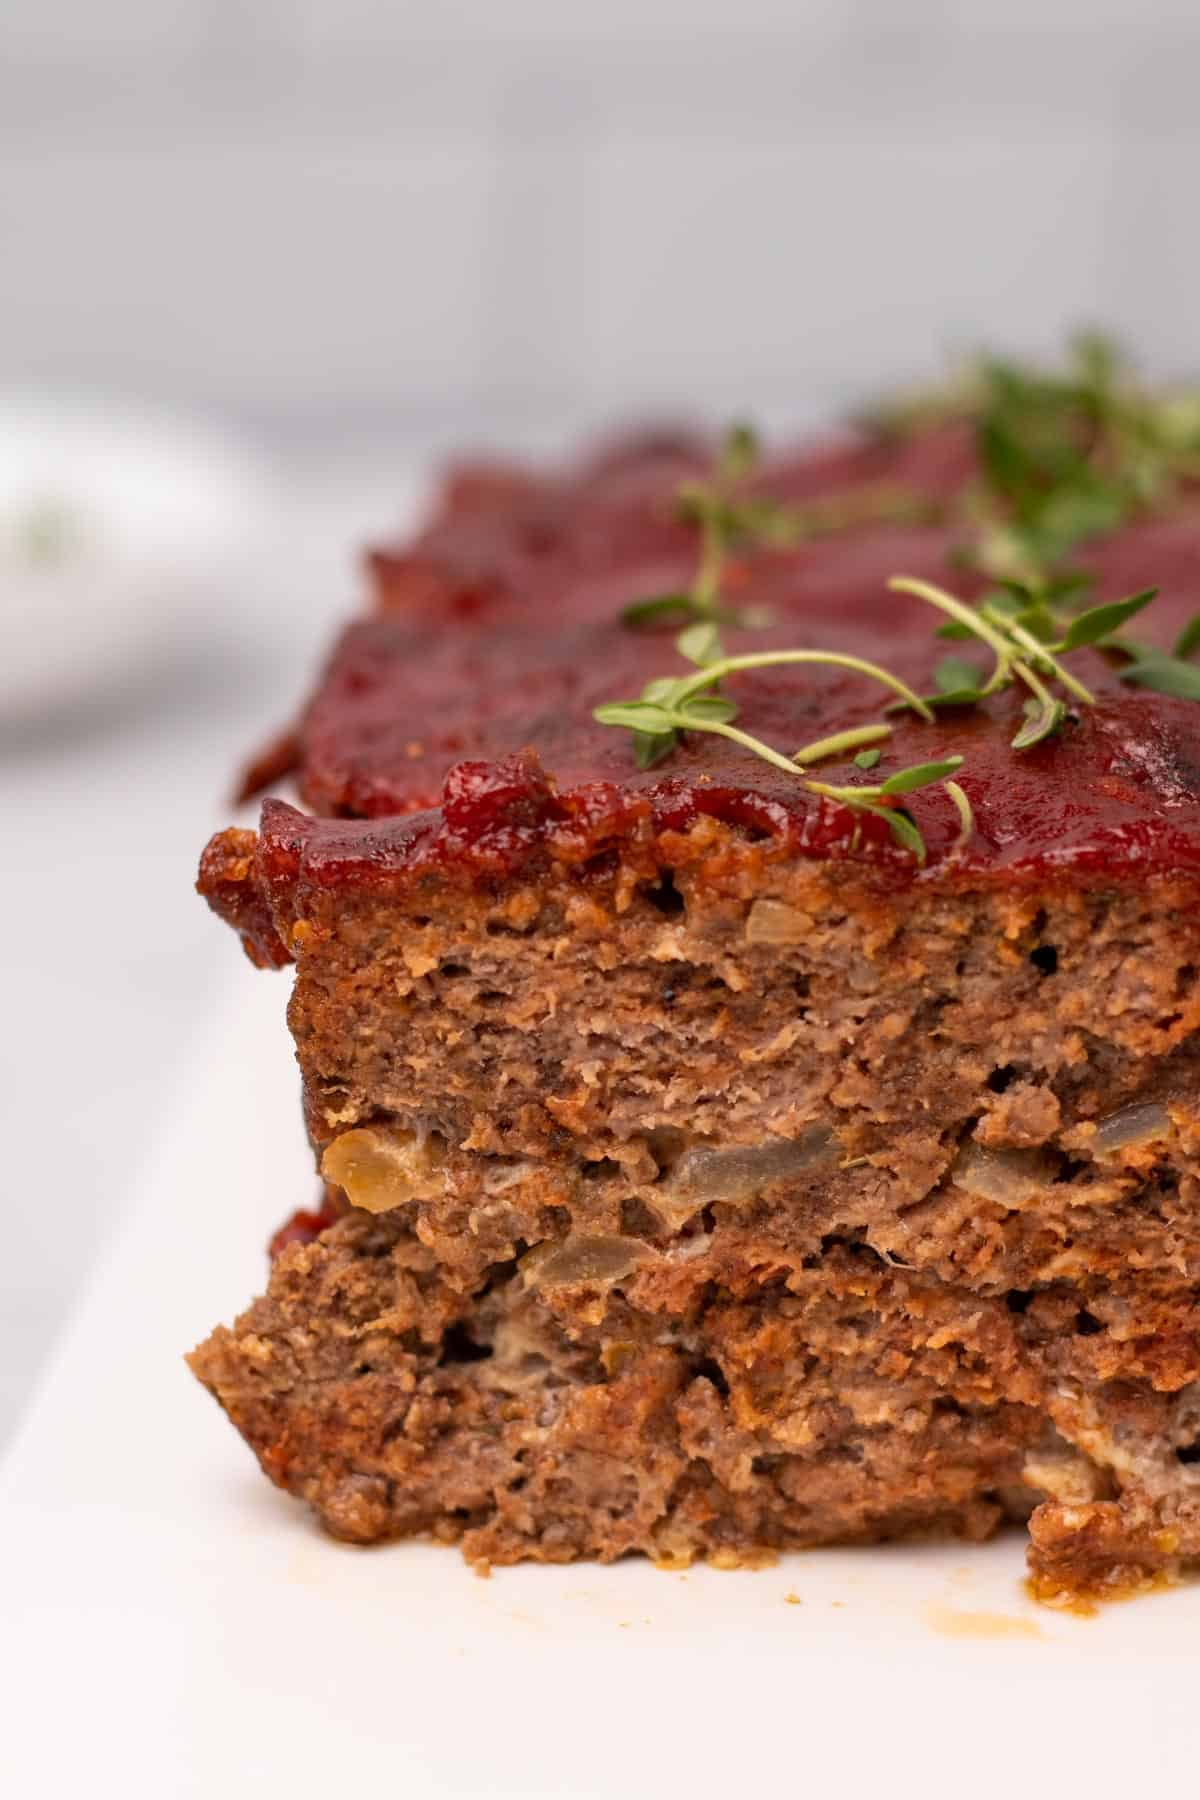 Close-up of meatloaf, garnished with fresh thyme